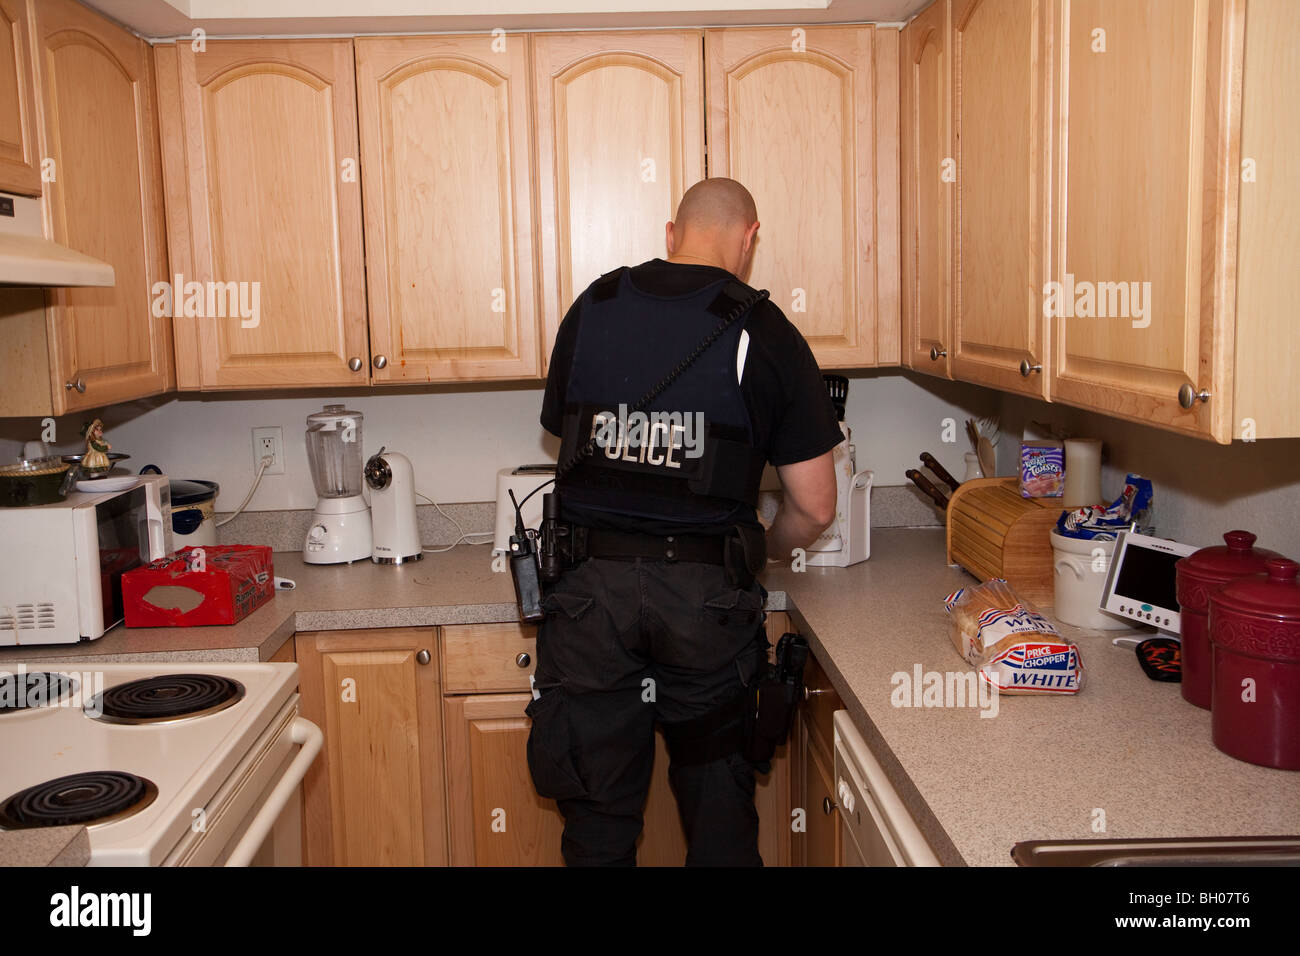 Police Officer searching kitchen. Drug related search warrant. Kansas City, MO, PD Street Narcotics Unit. - Stock Image